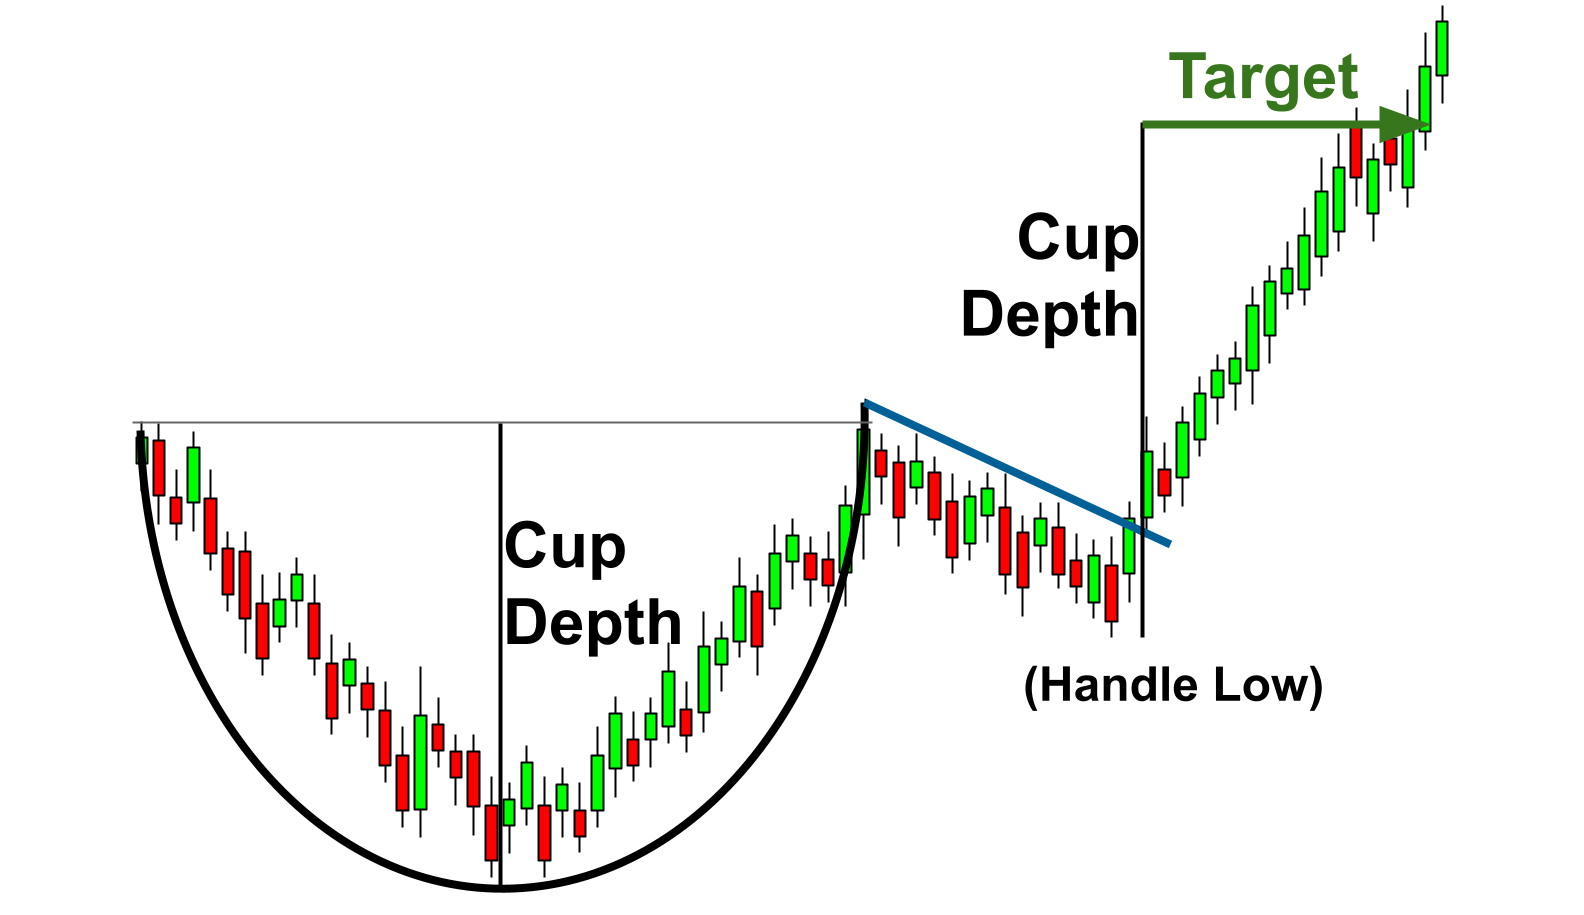 Measuring the distance of the cup and handle for an optimal risk-to-reward ratio.